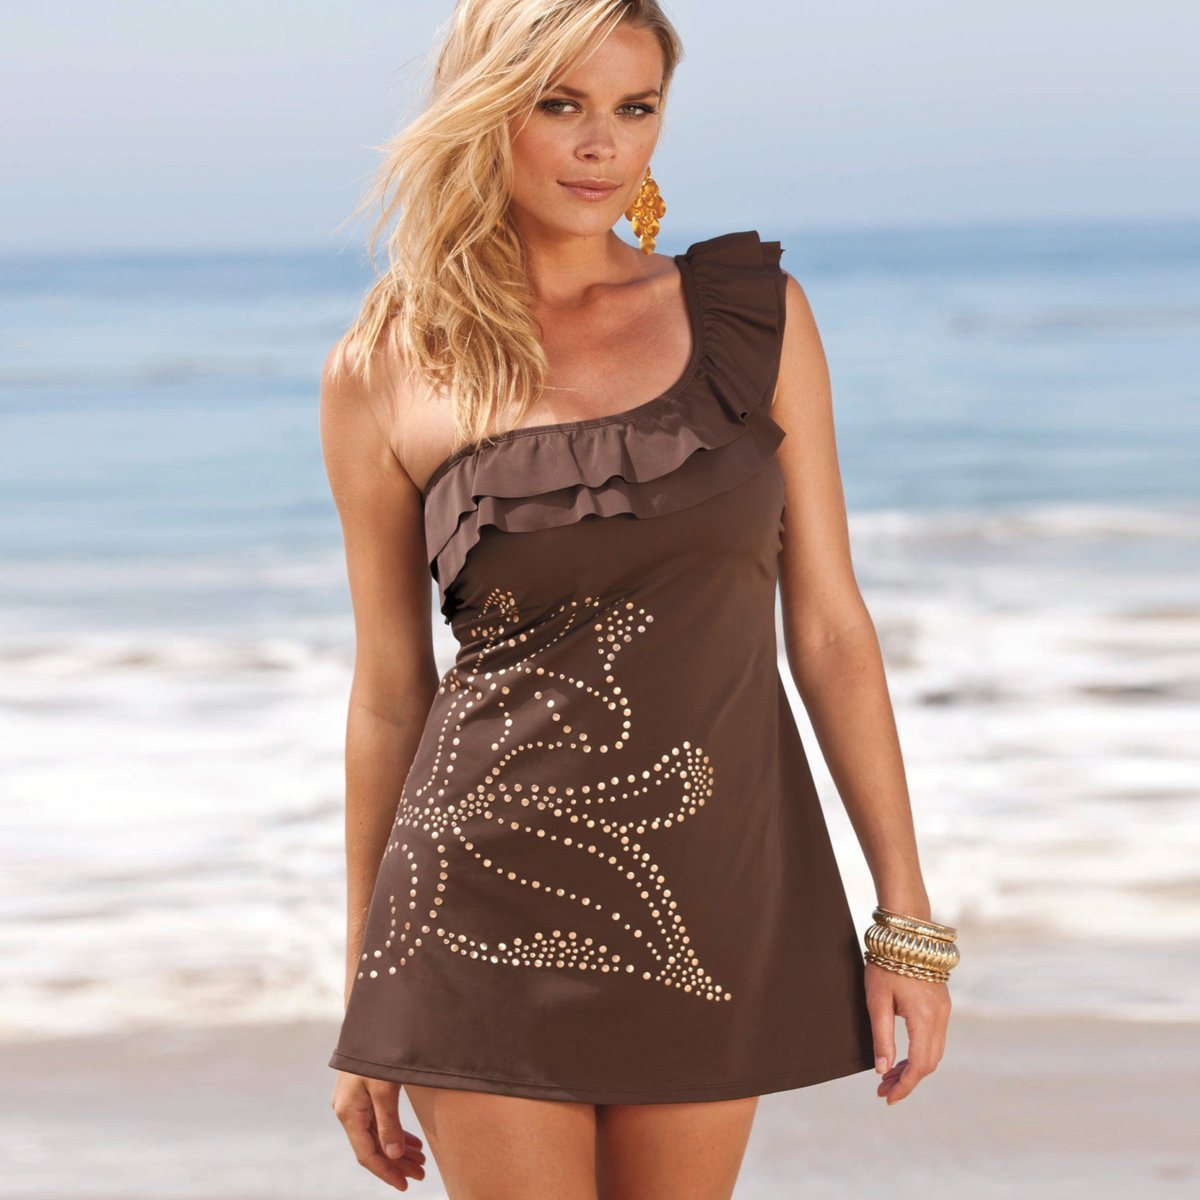 DIVA: Tendenze moda mare plus size 2012